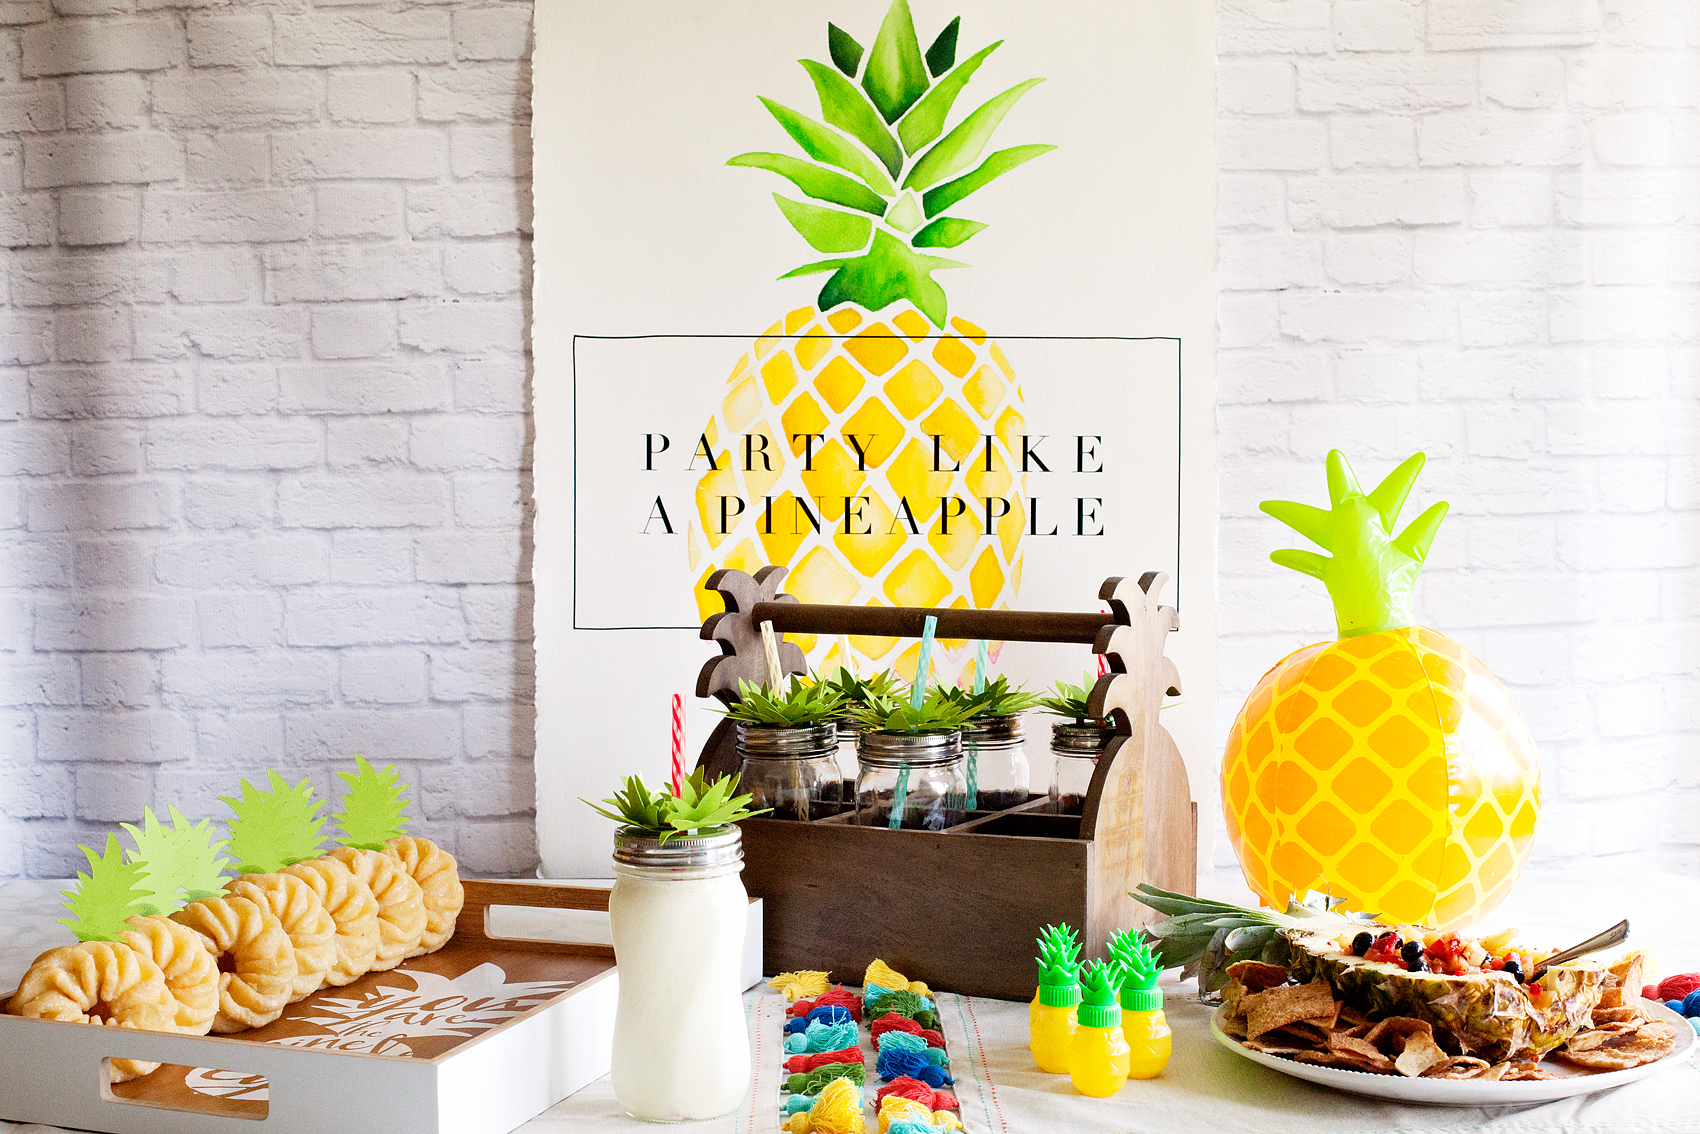 Who doesn't love a whimsical and tasty party? This Pineapple Party is perfect for all ages. Come on over to WhipperBerry to learn how to recreate this EASY party!